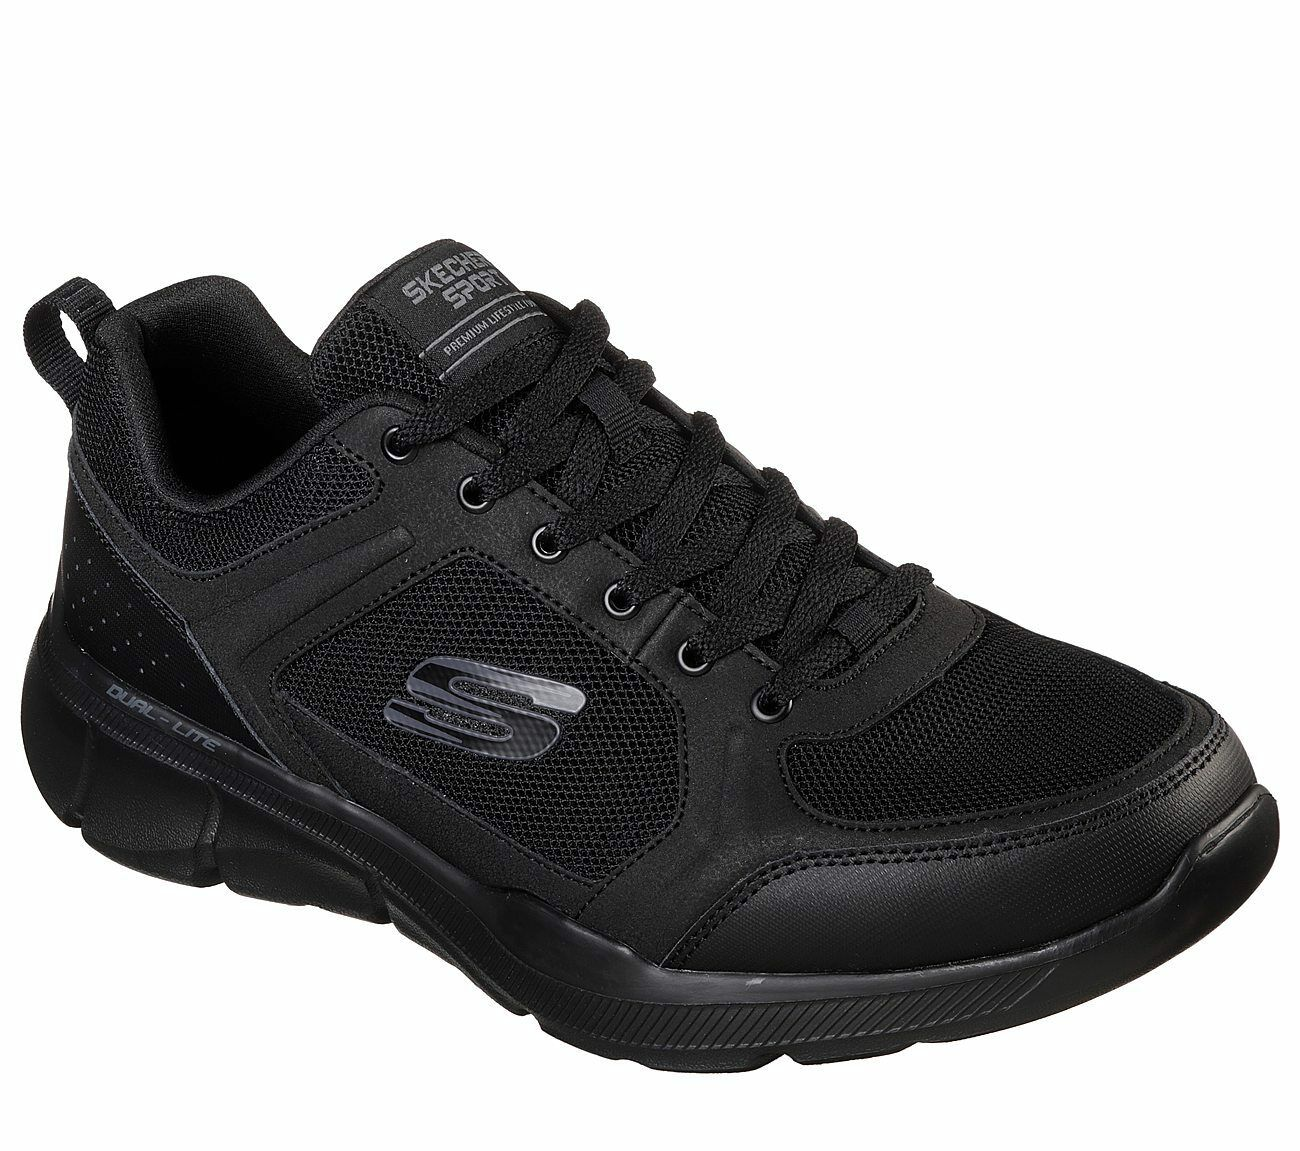 Skechers EWW Extra Wide Black shoes Men's Memory Foam Comfort Casual Sport 52940